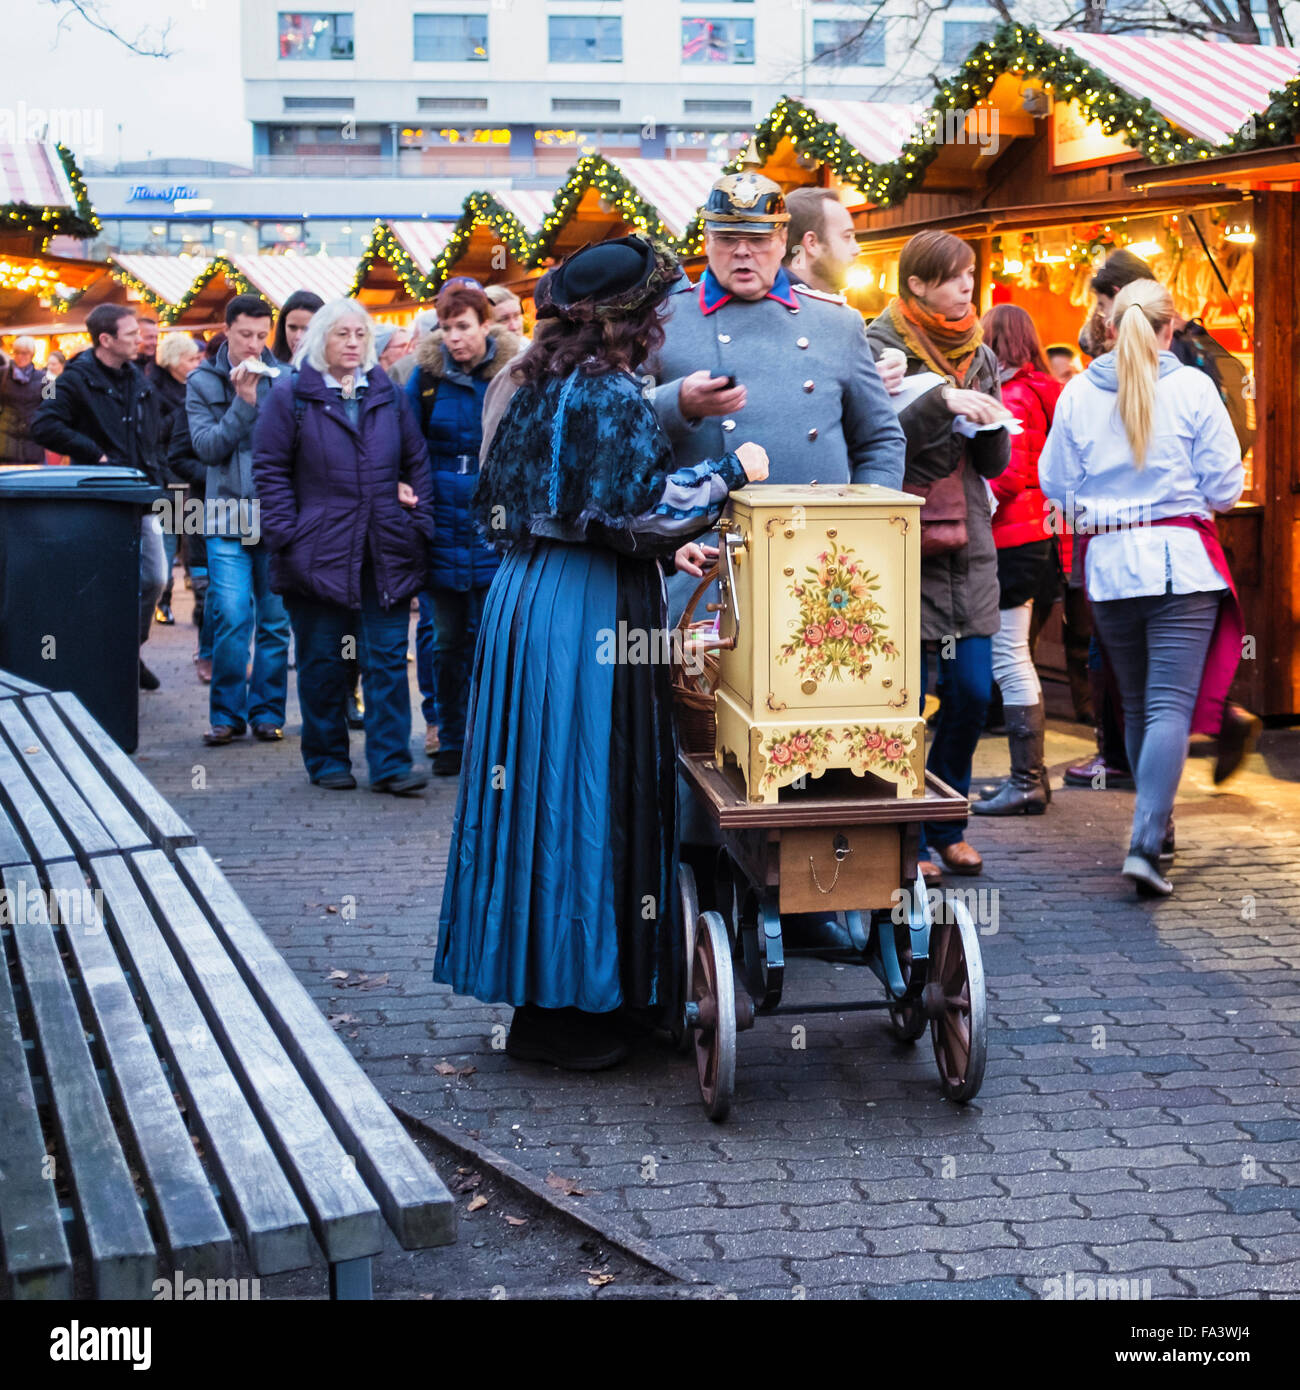 Berlin, Weihnachtszeit German Christmas market with stalls and organ grinder in period dress. - Stock Image